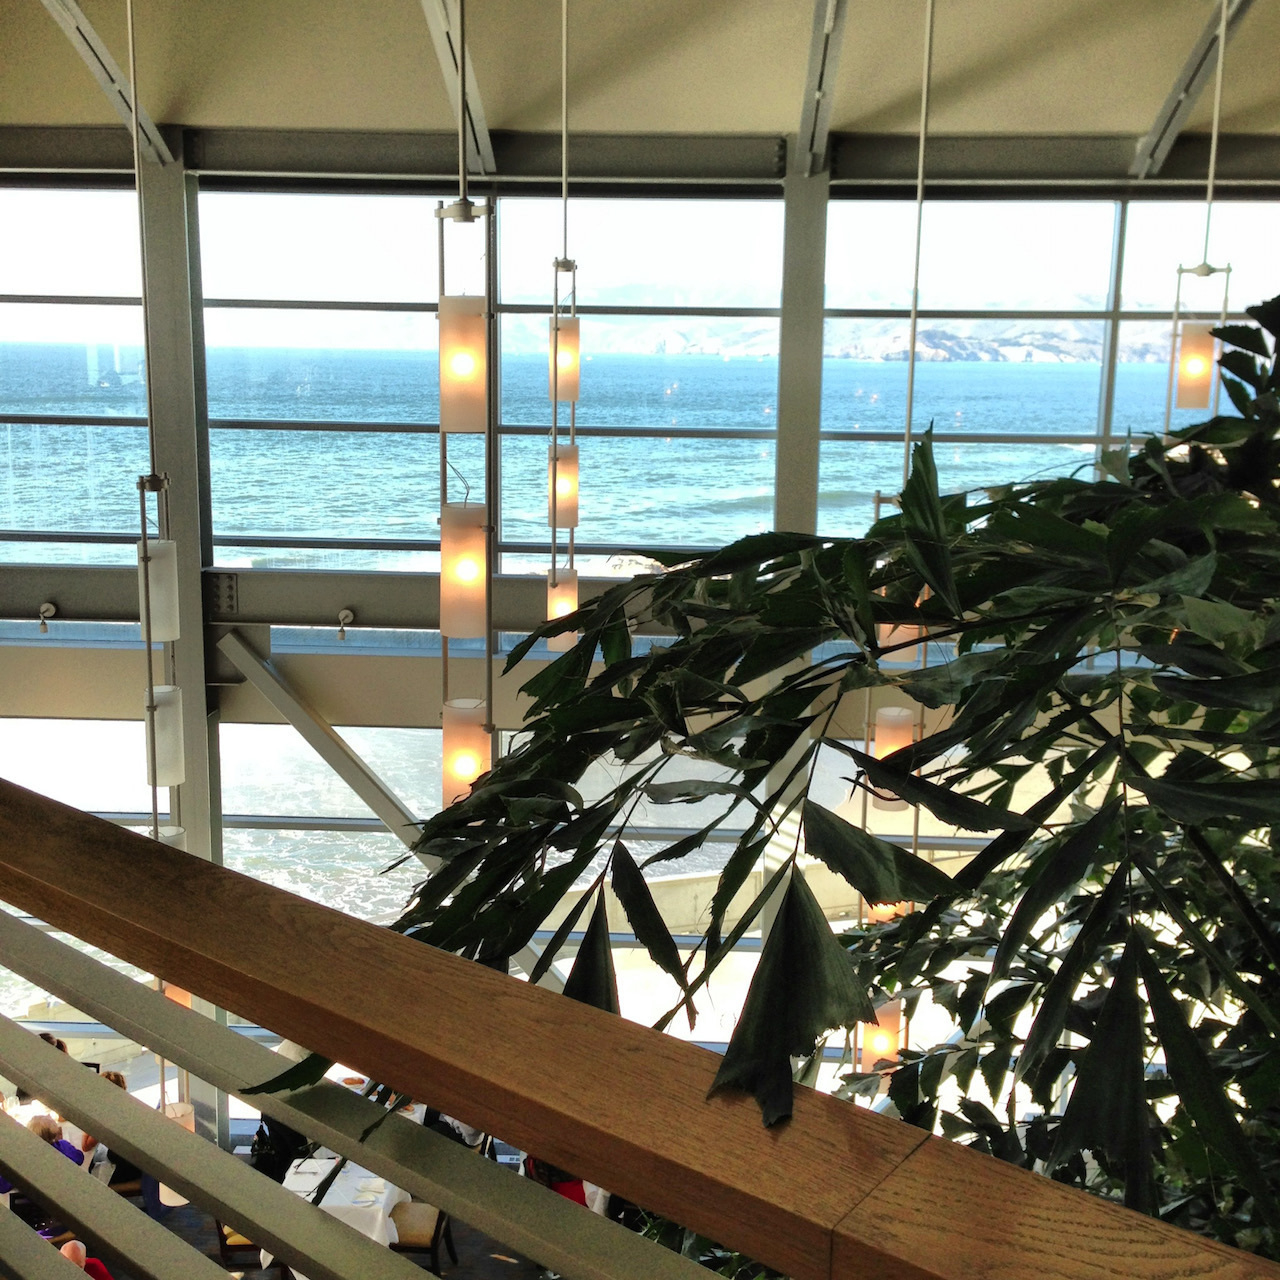 Cliff House's upper level, a bar on the balcony